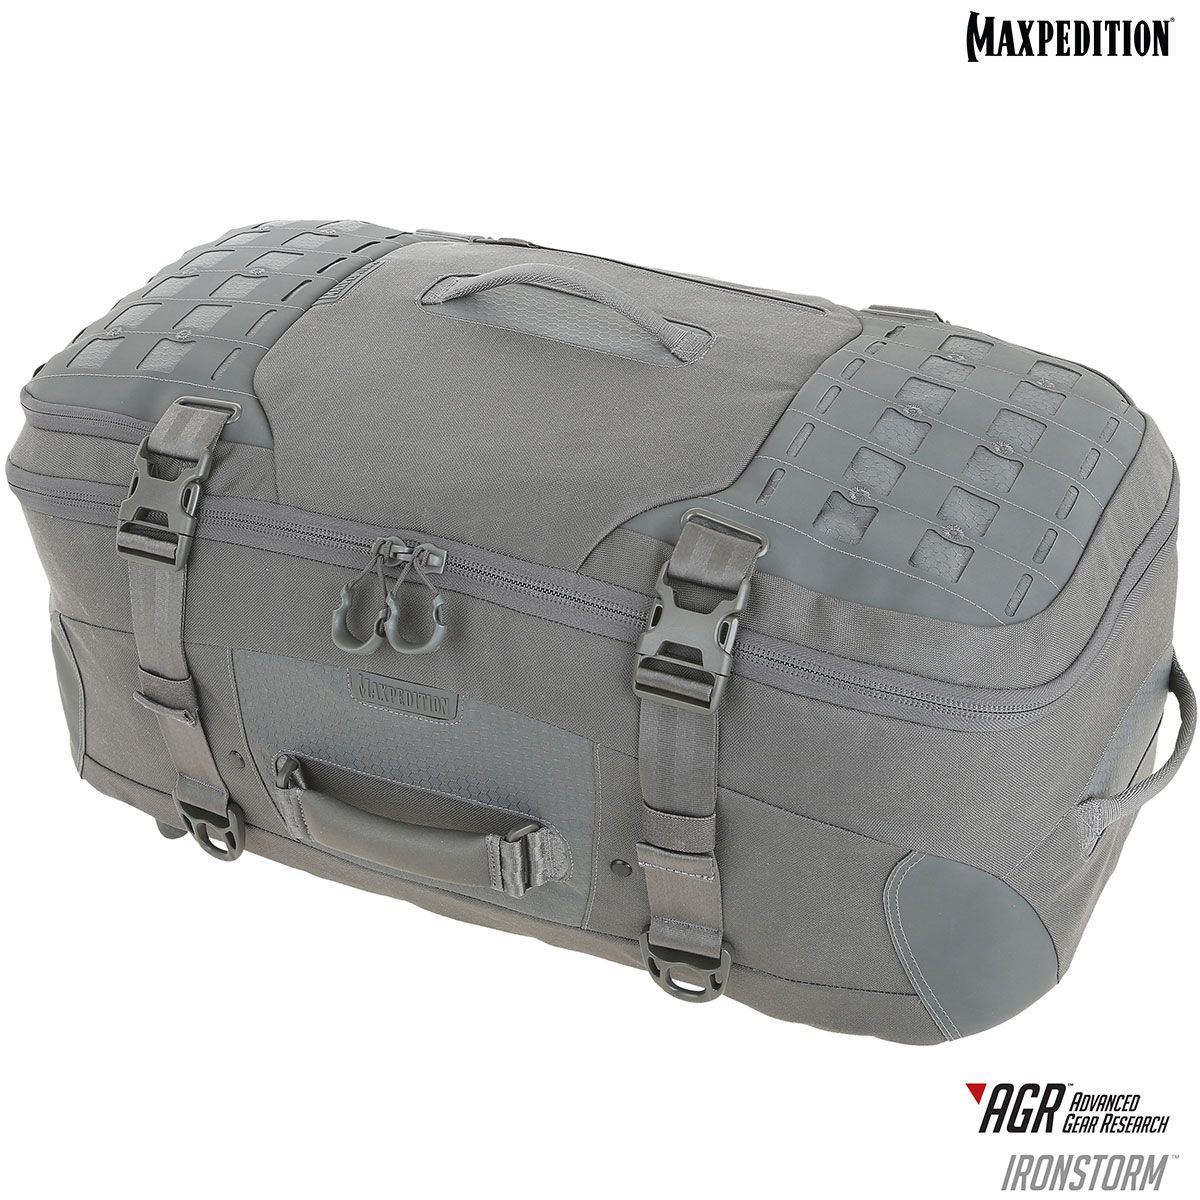 Maxpedition RSMBLK AGR Advanced Gear Research Ironstorm Adventure Travel Bag, Gray